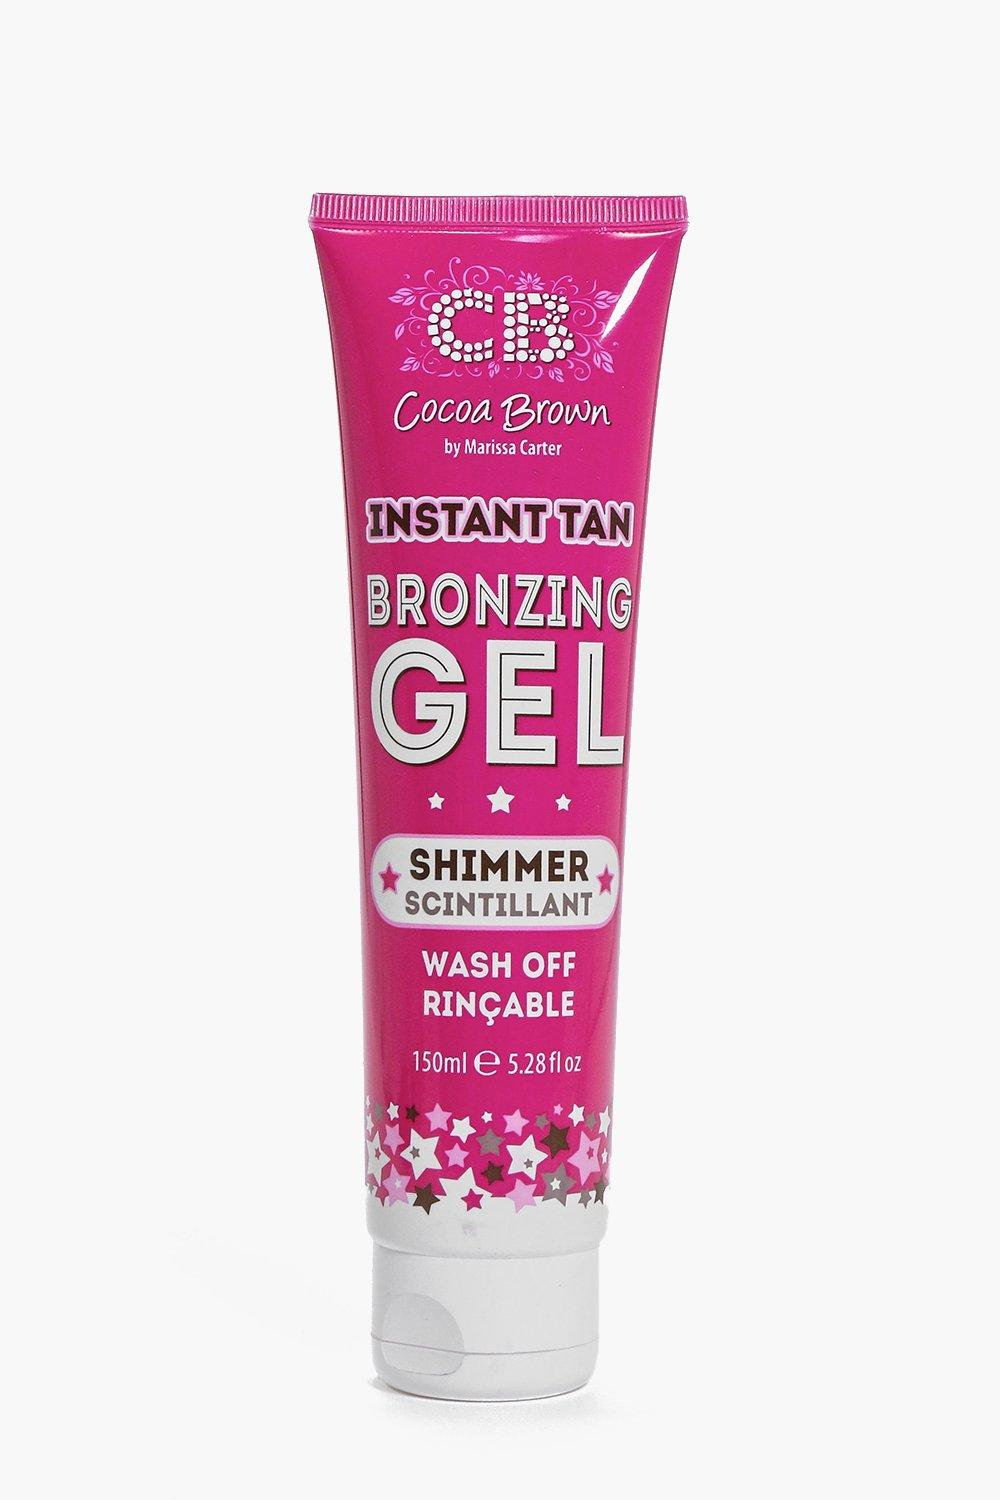 Cocoa Brown Instant Bronze Gel Shimmer